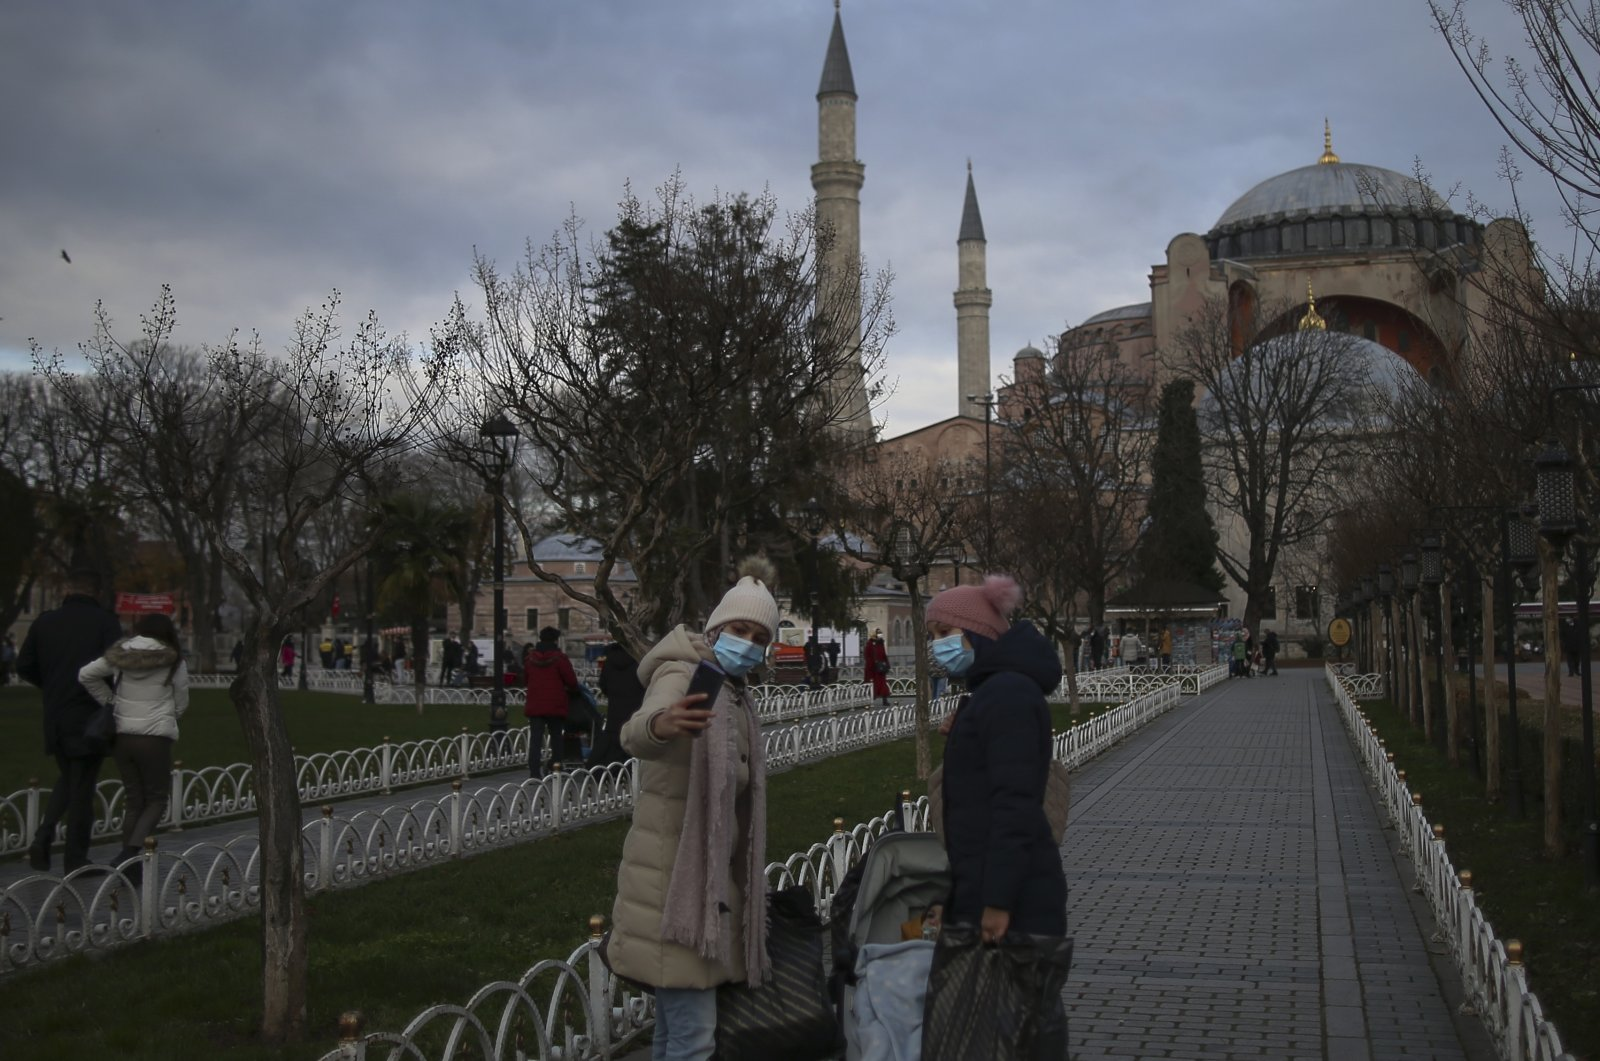 People wearing masks take photos in the historic Sultanahmet Square with Hagia Sophia in the background, Istanbul, Turkey, Dec. 21, 2020. (AP Photo)